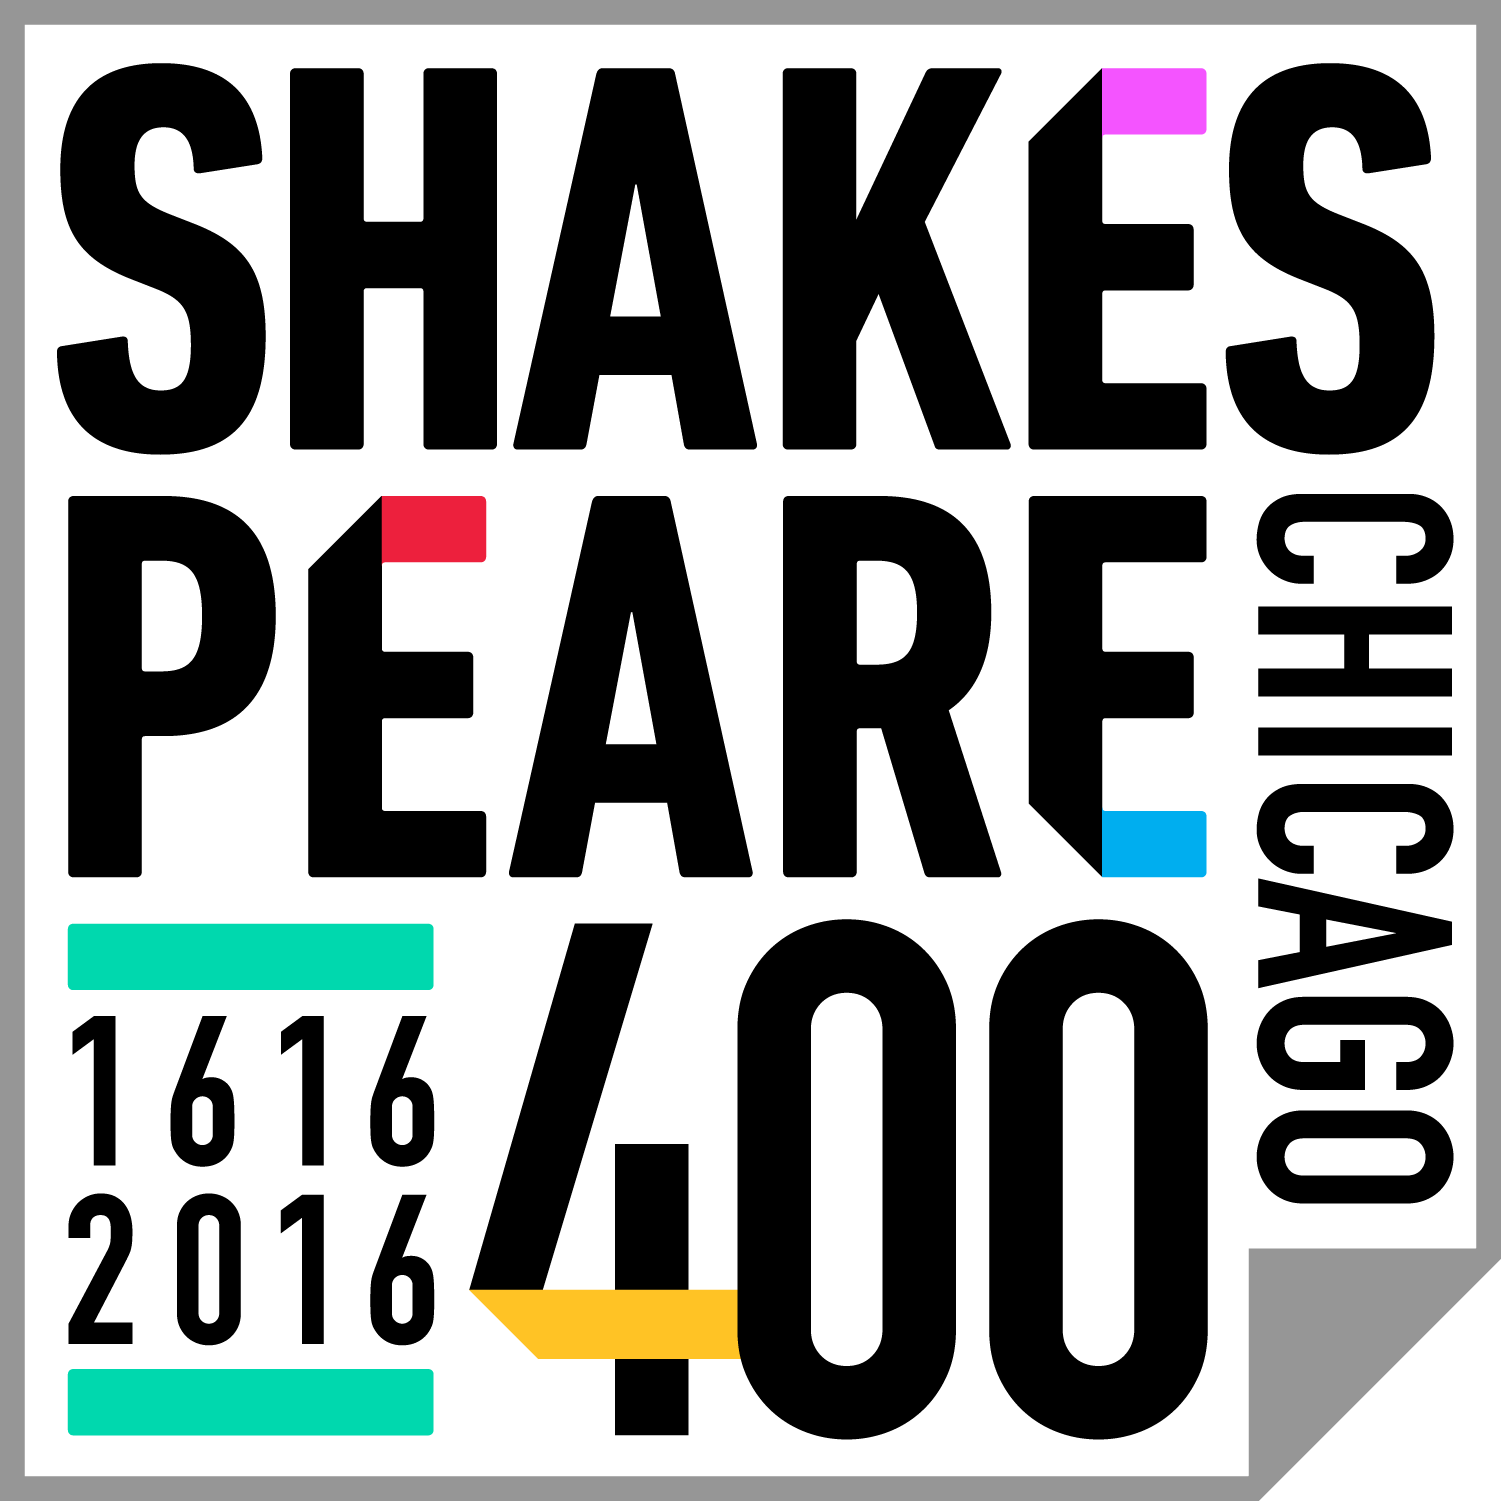 Shakespeare 400 logo.png